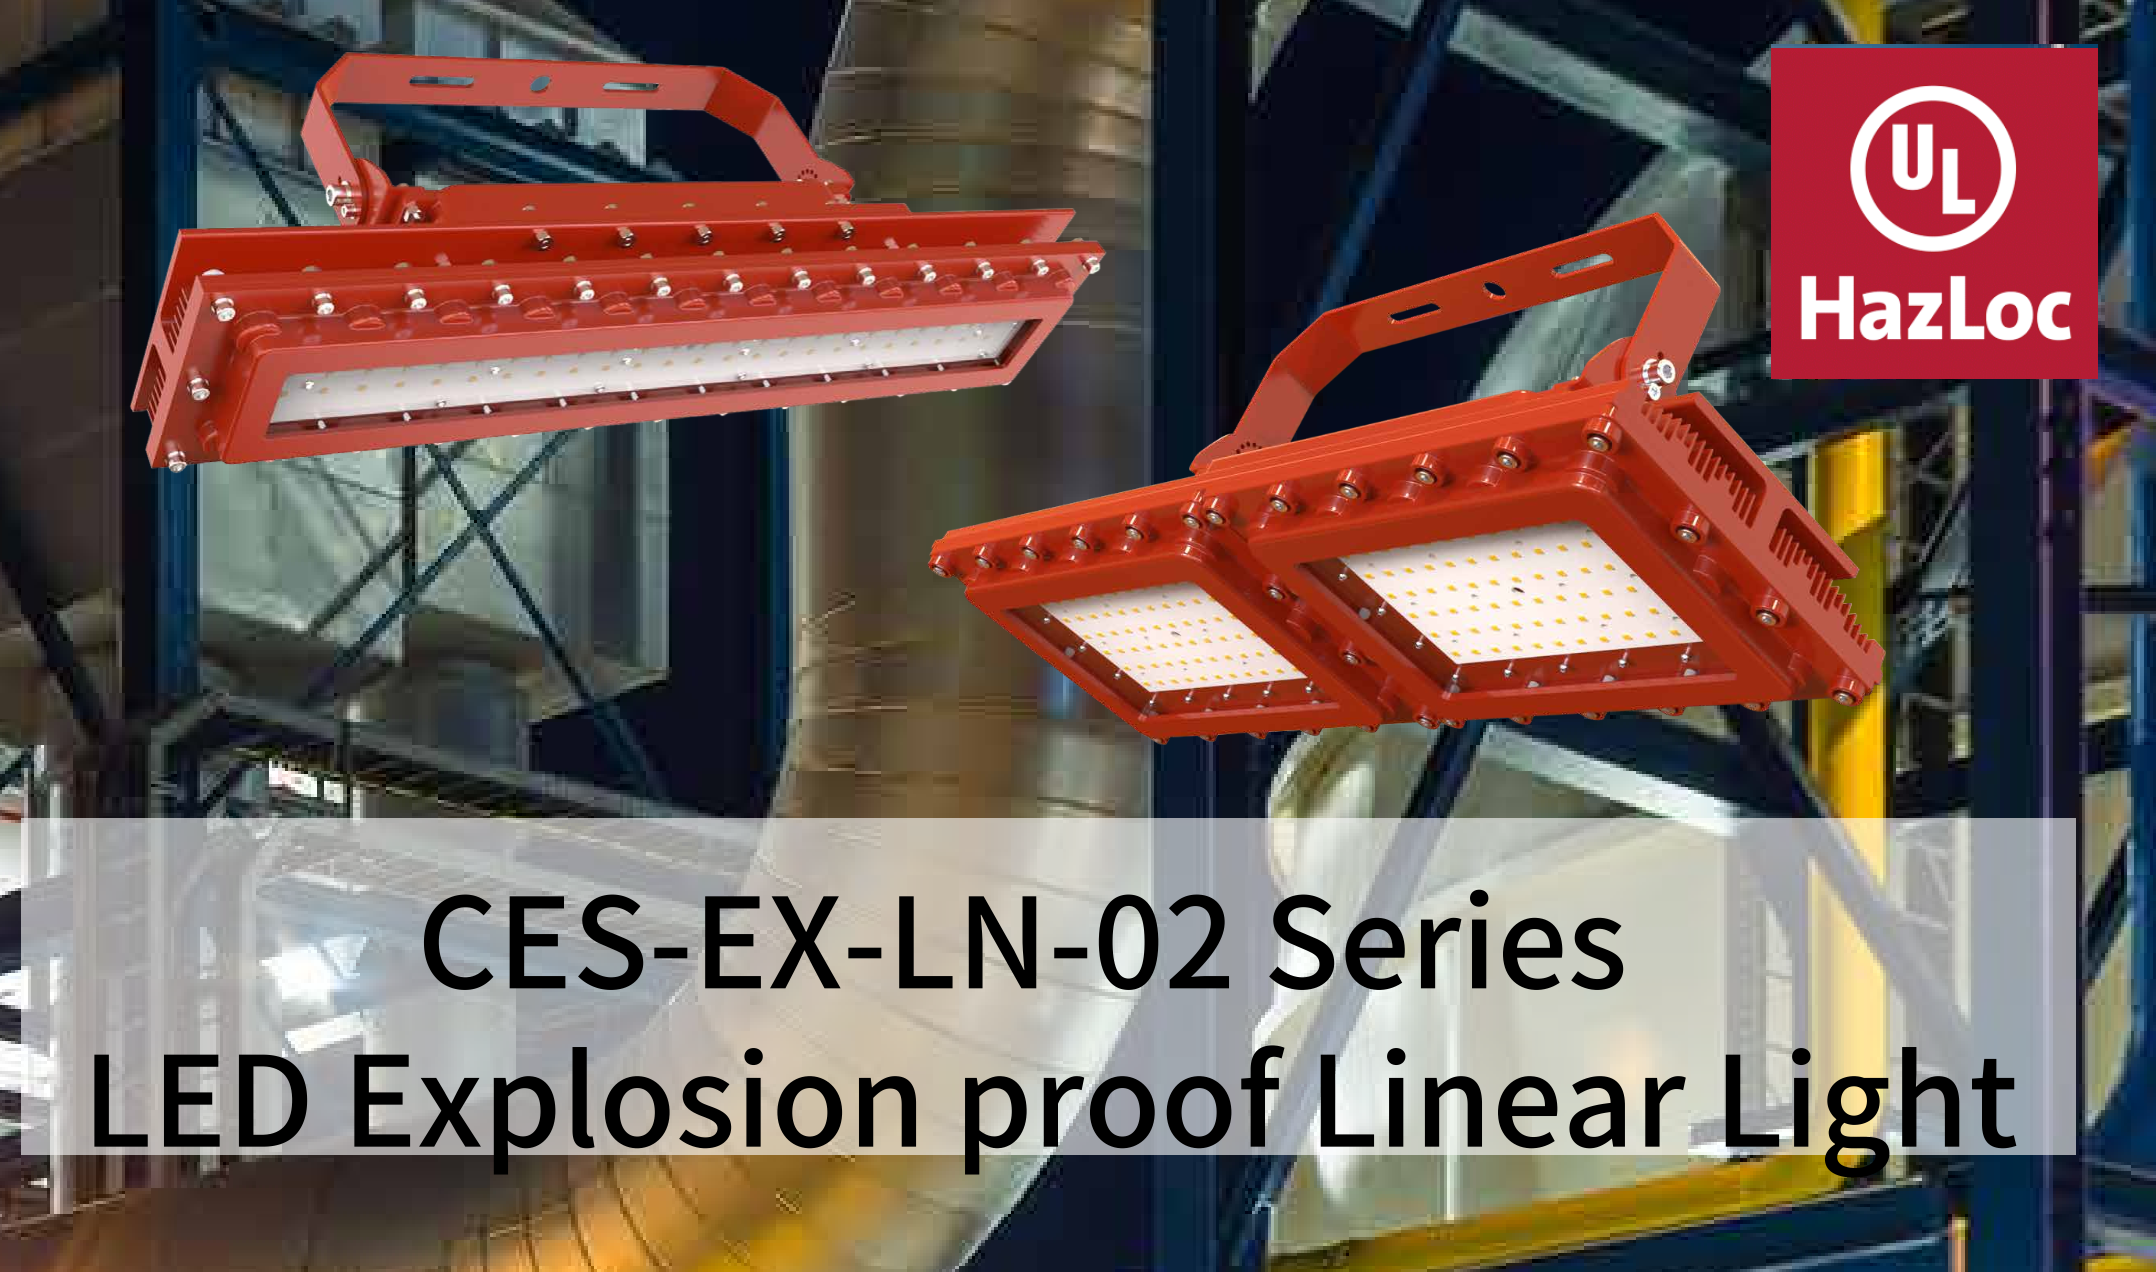 EX-LN-02 series UL844 LED Explosion Light